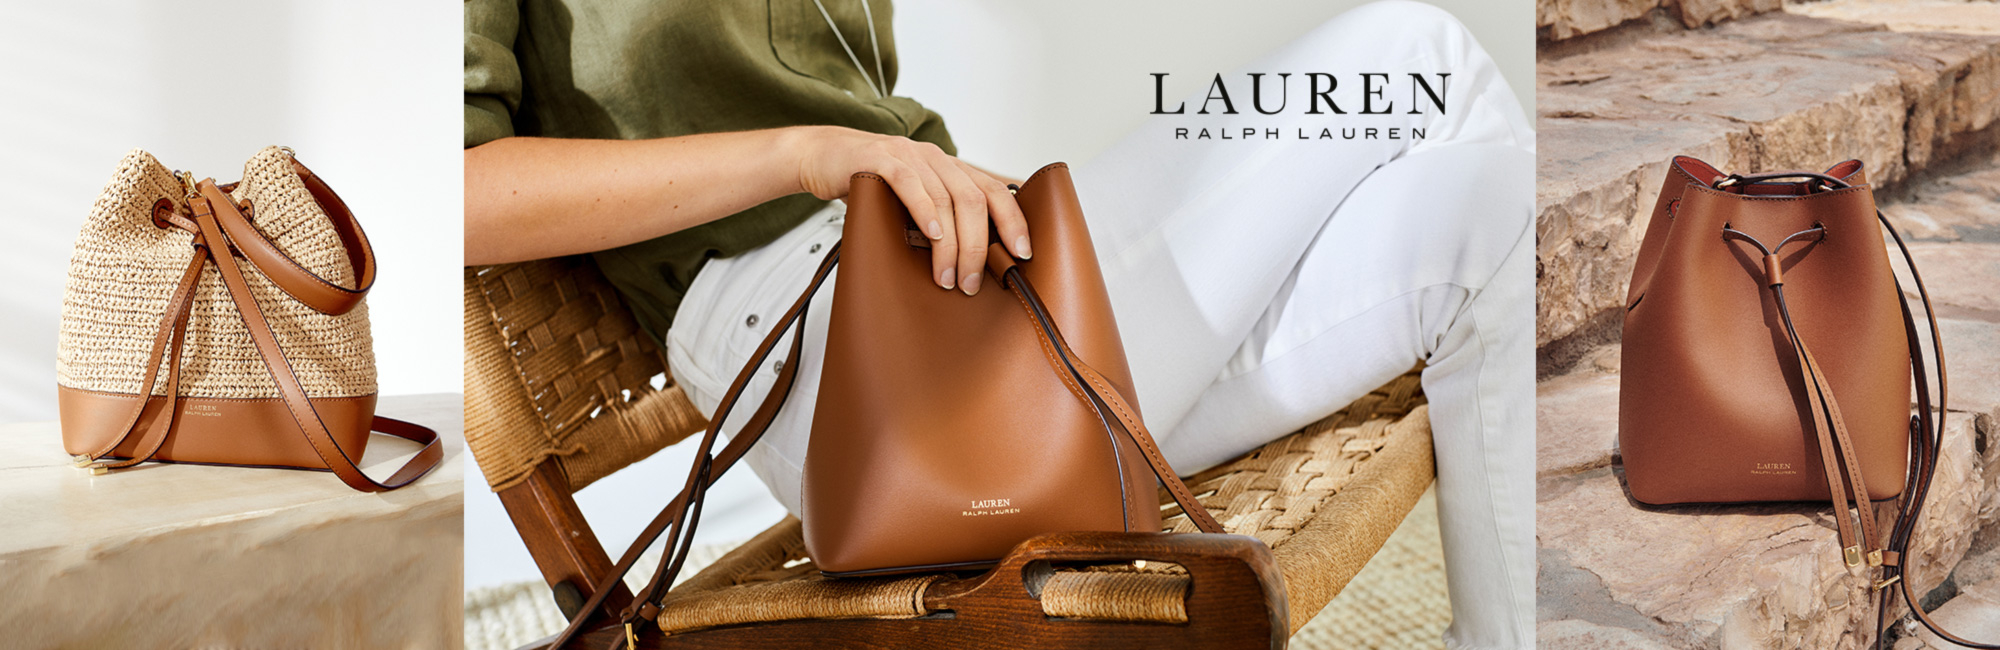 3bd9ffc386af Lauren Ralph Lauren Bags and Handbags - Designer Bags Shop - wardow.com